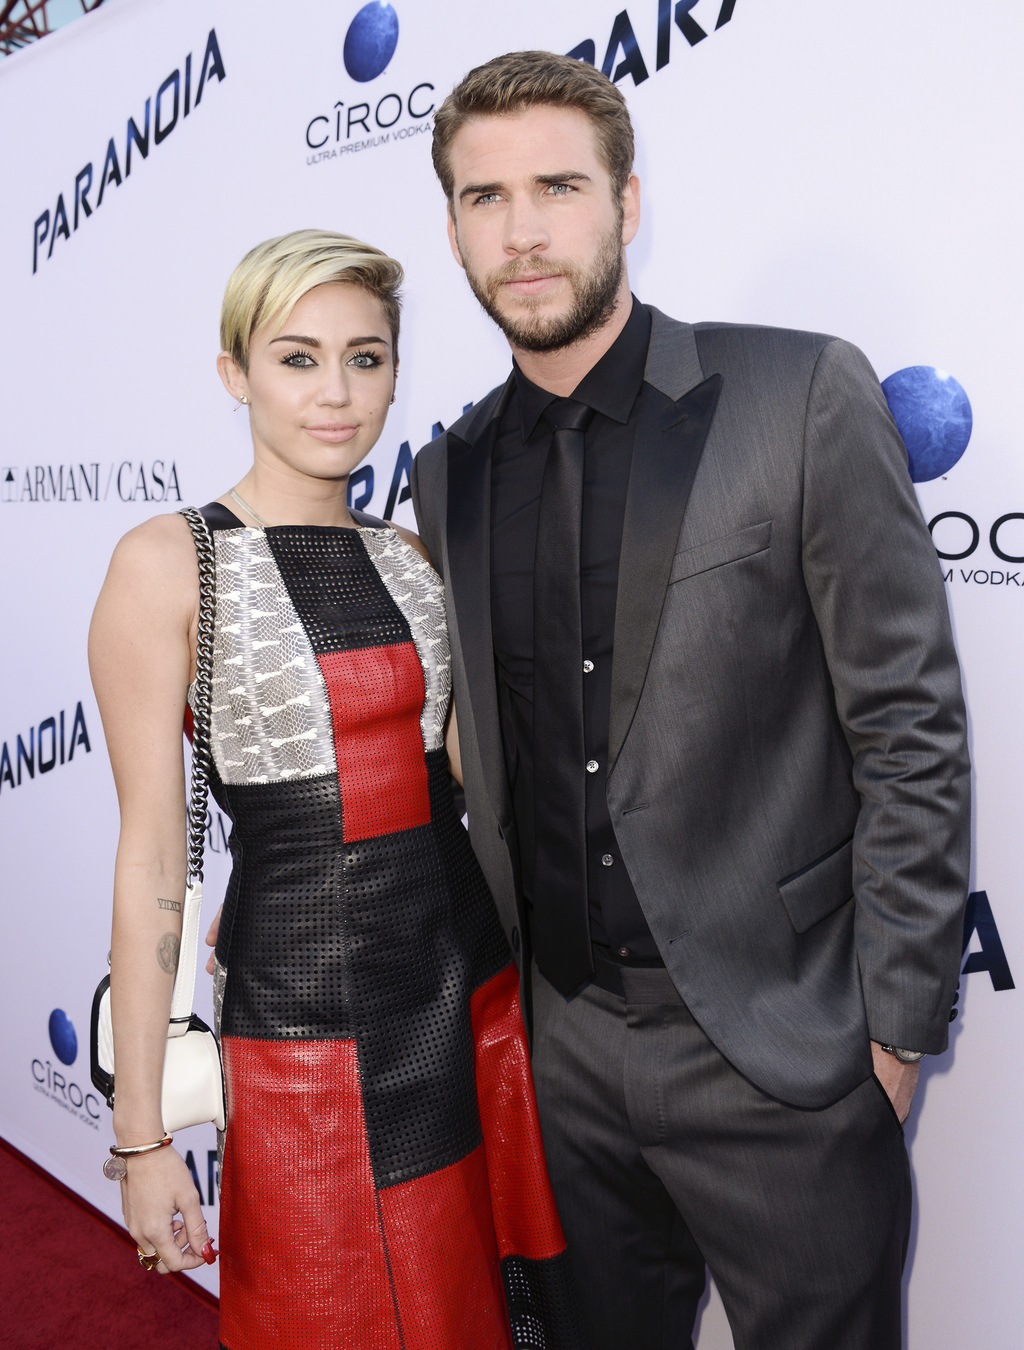 FILE - In this Aug. 8, 2013, file photo, actor Liam Hemsworth and singer and actress Miley Cyrus arrive on the red carpet at the US pre...